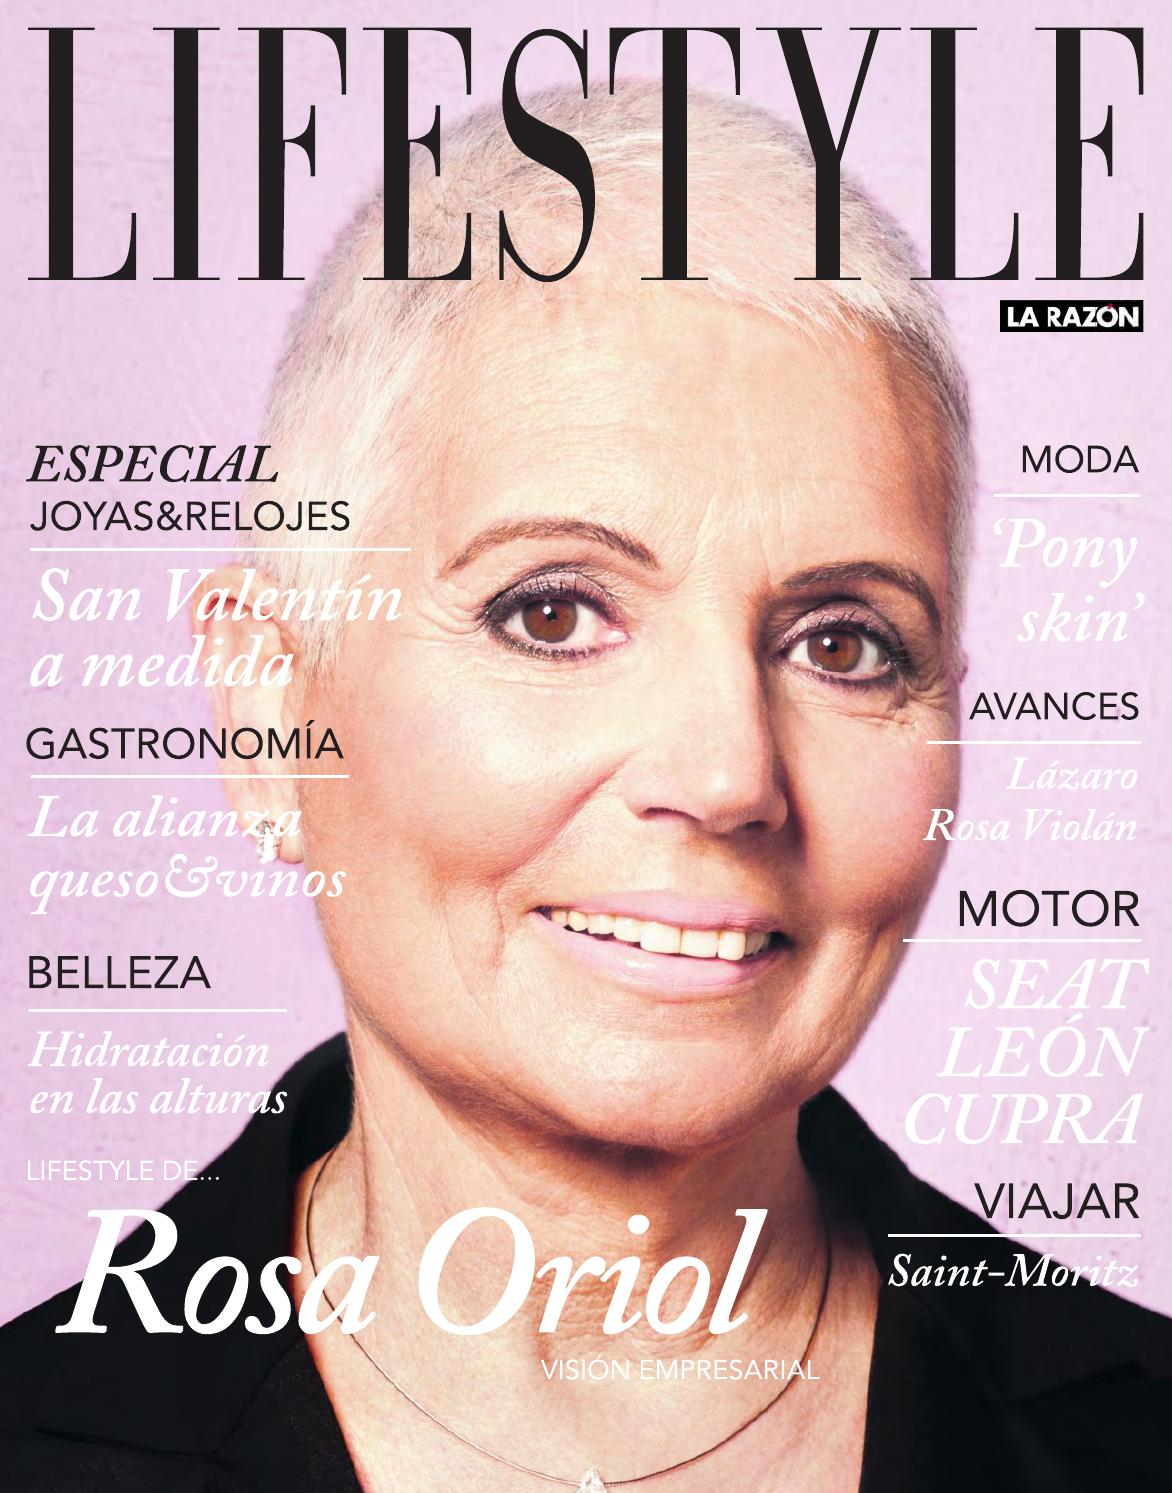 Lifestyle Febrero 2014 by PEQUEÑASgrandesCOSAS Productions - issuu